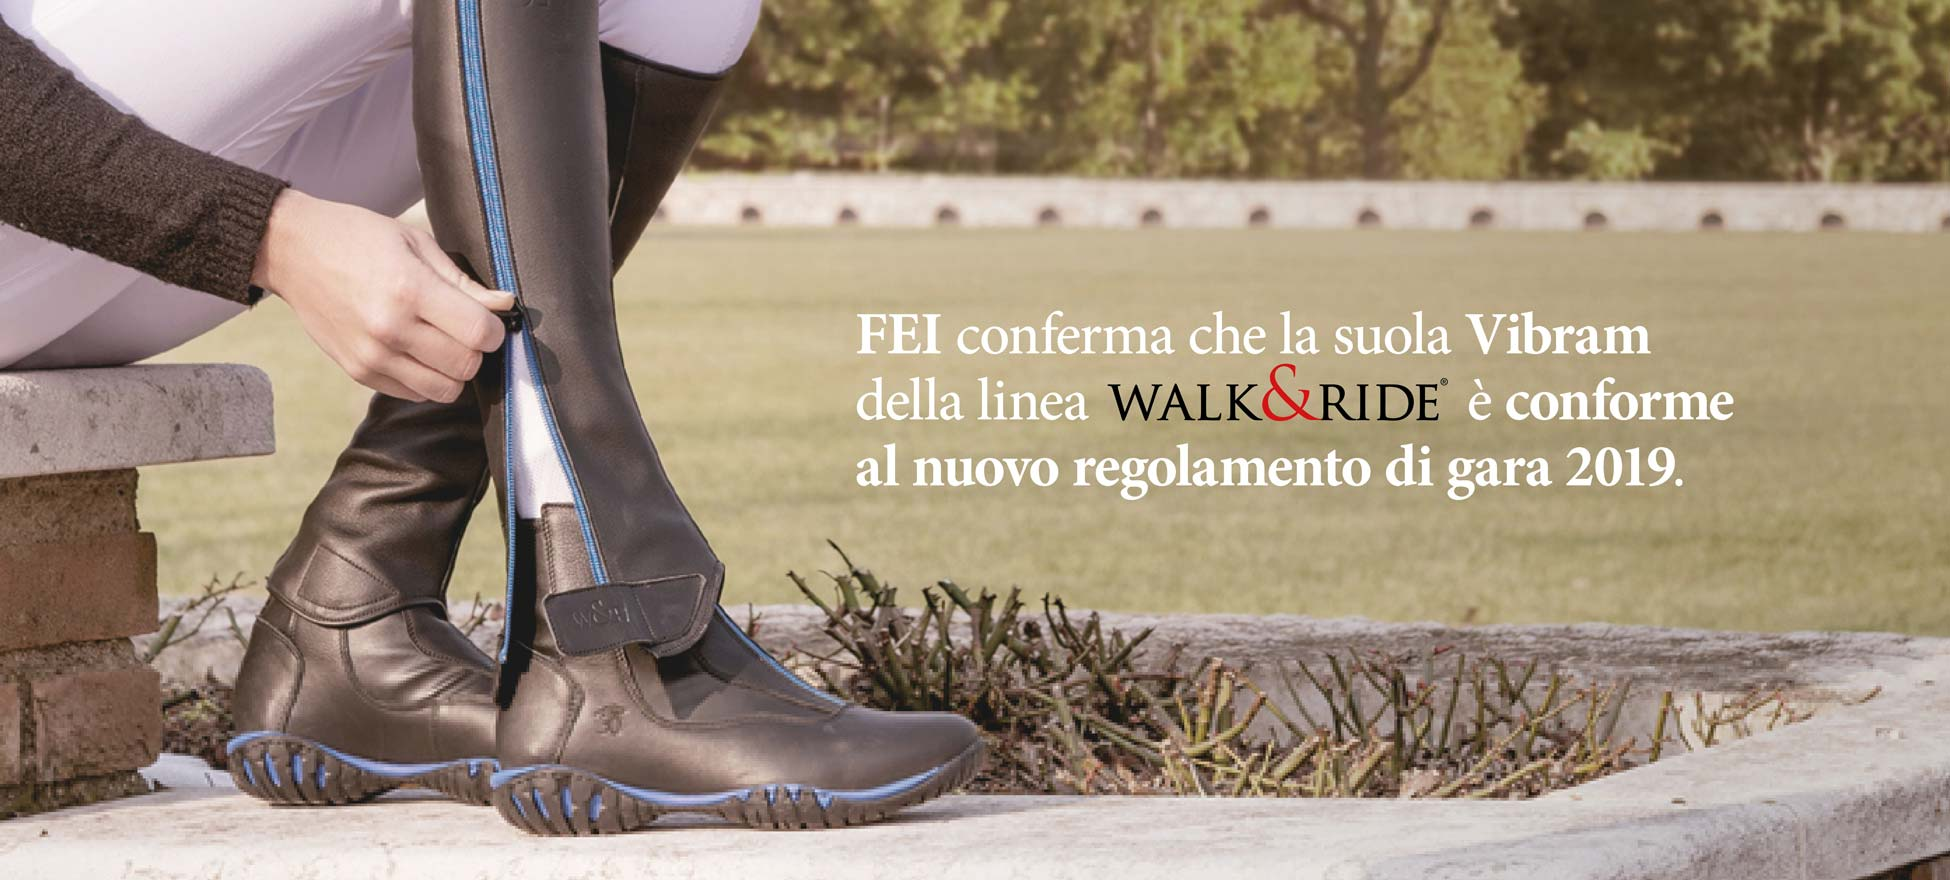 Walk&Ride FEI